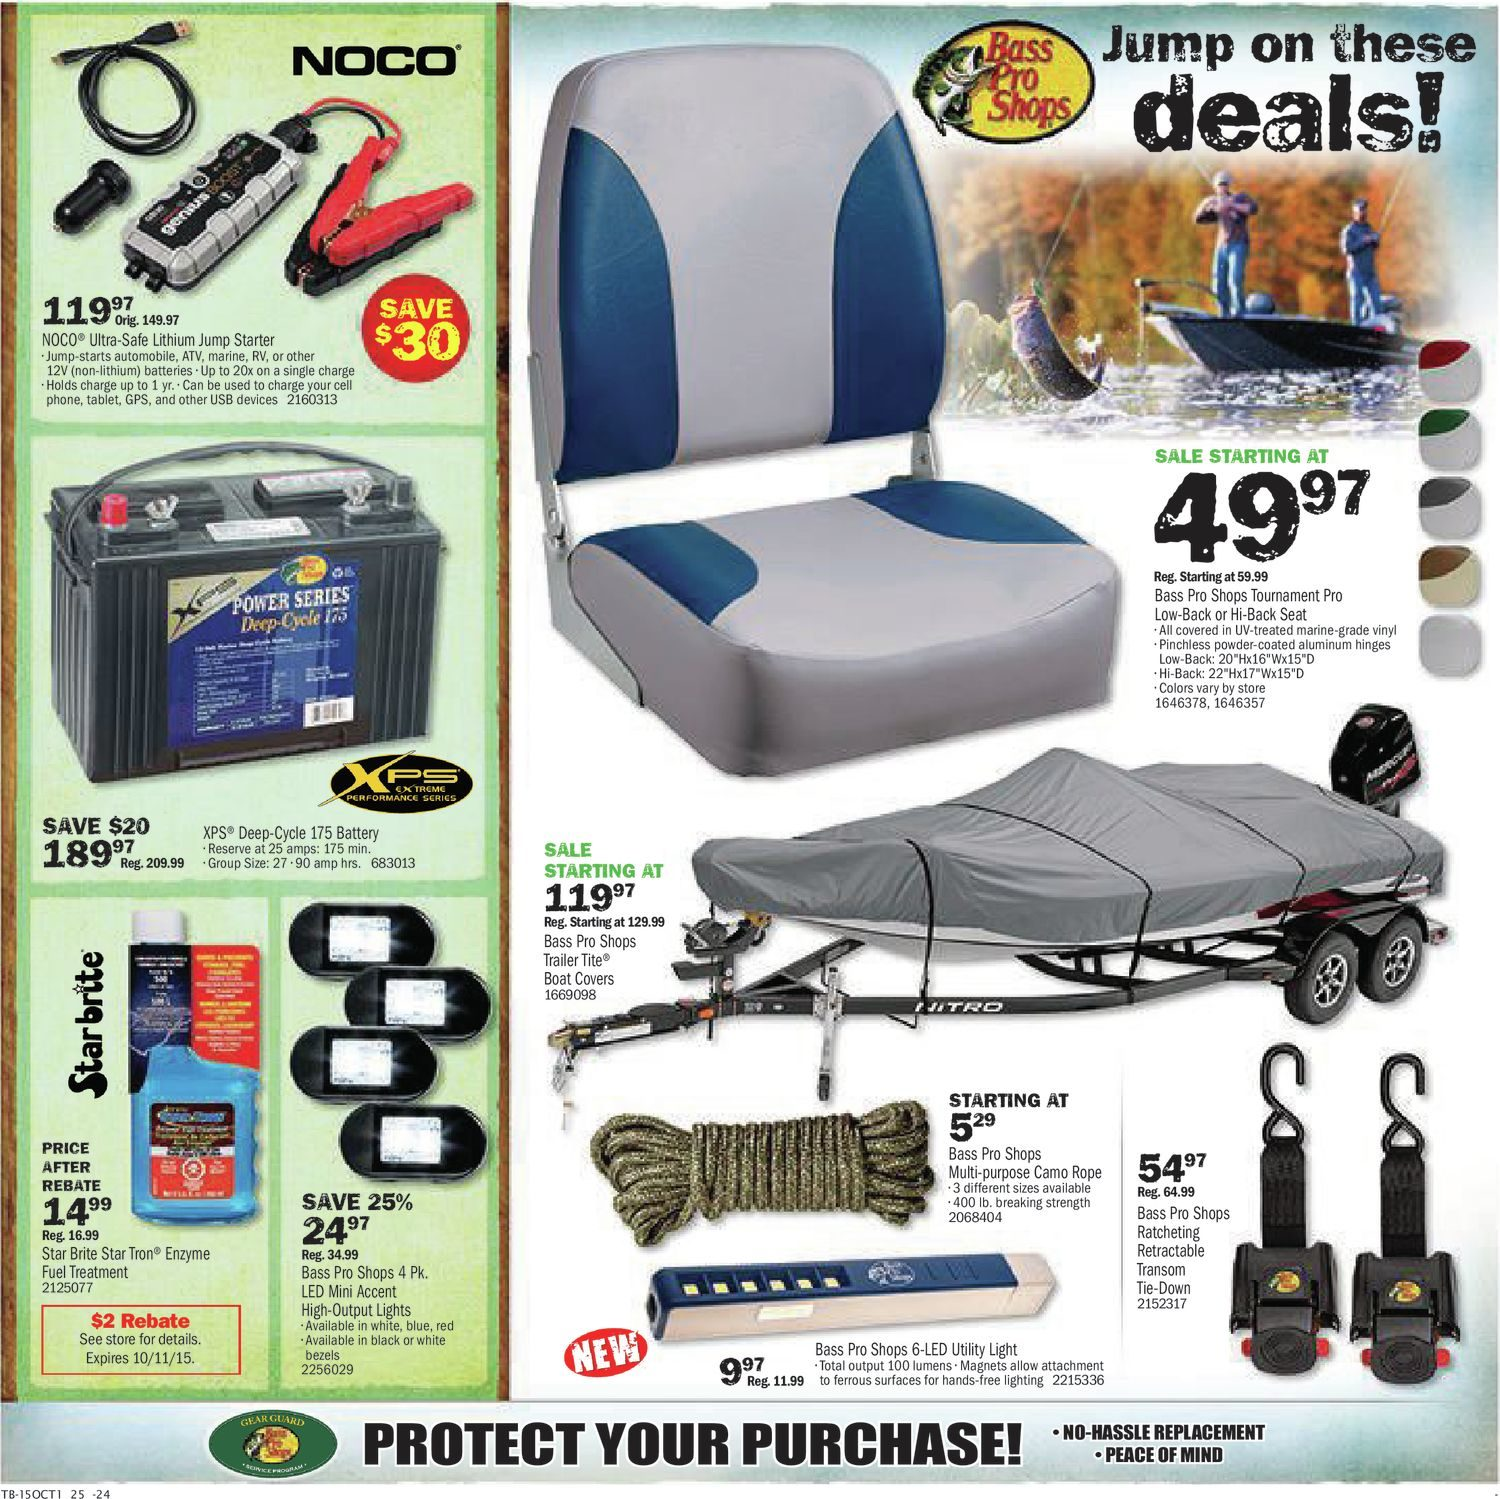 c80ae46f09b8 Bass Pro Shops Weekly Flyer - Fall Savings Sale! - Sep 25 – Oct 11 -  RedFlagDeals.com